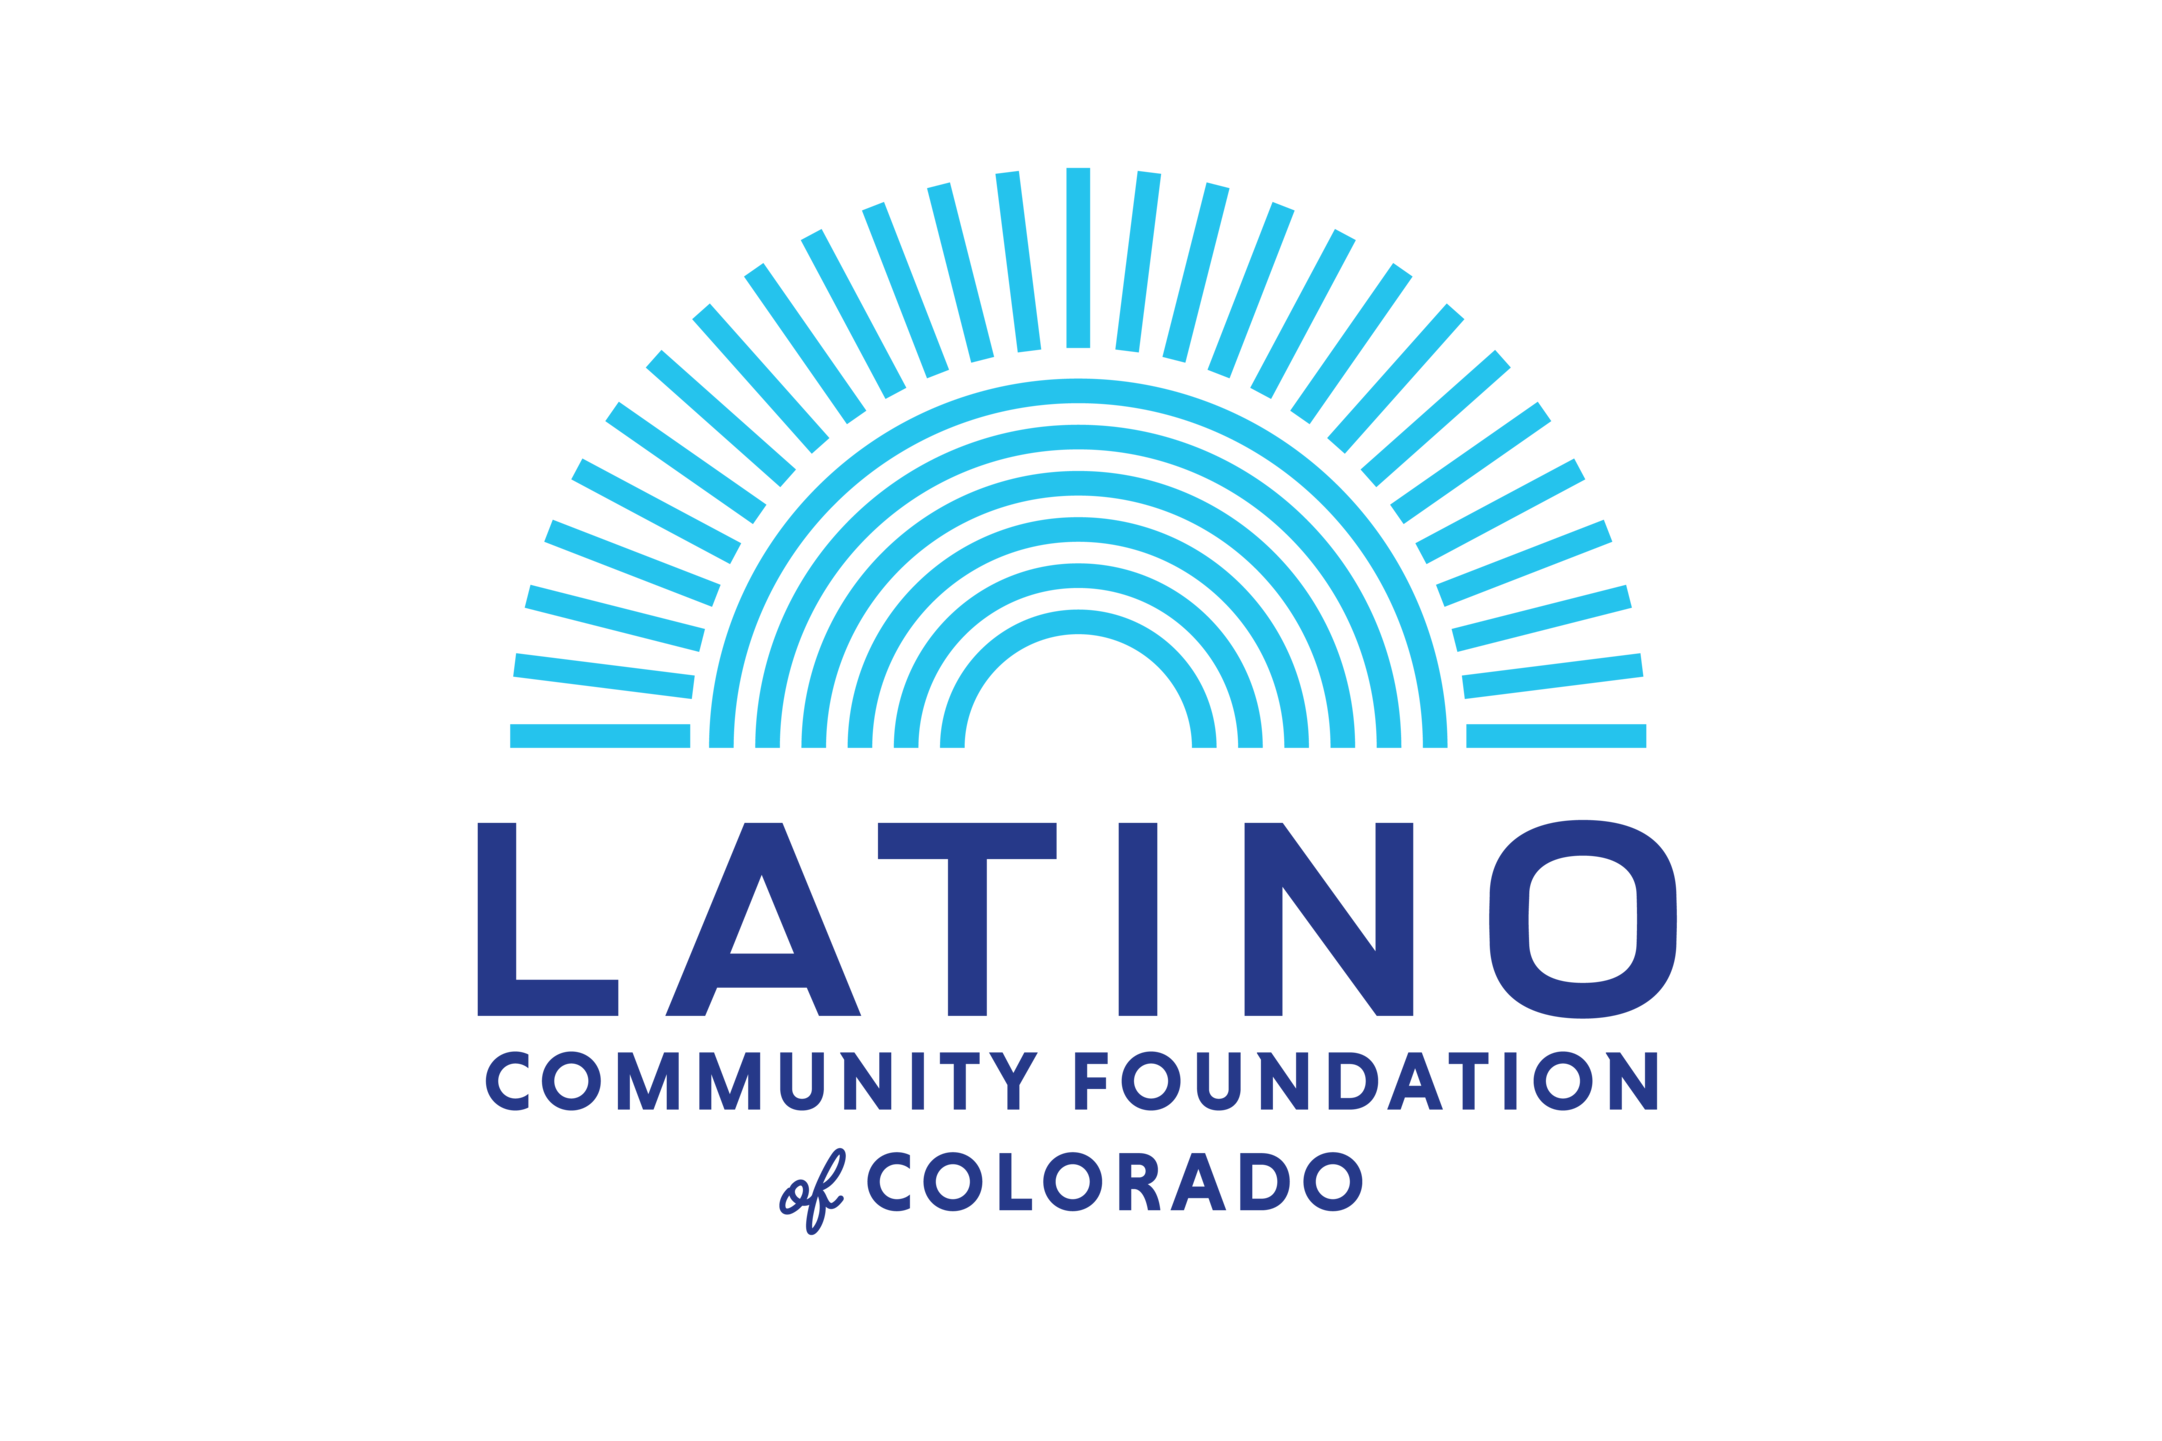 Latino Community Foundation of Colorado logo